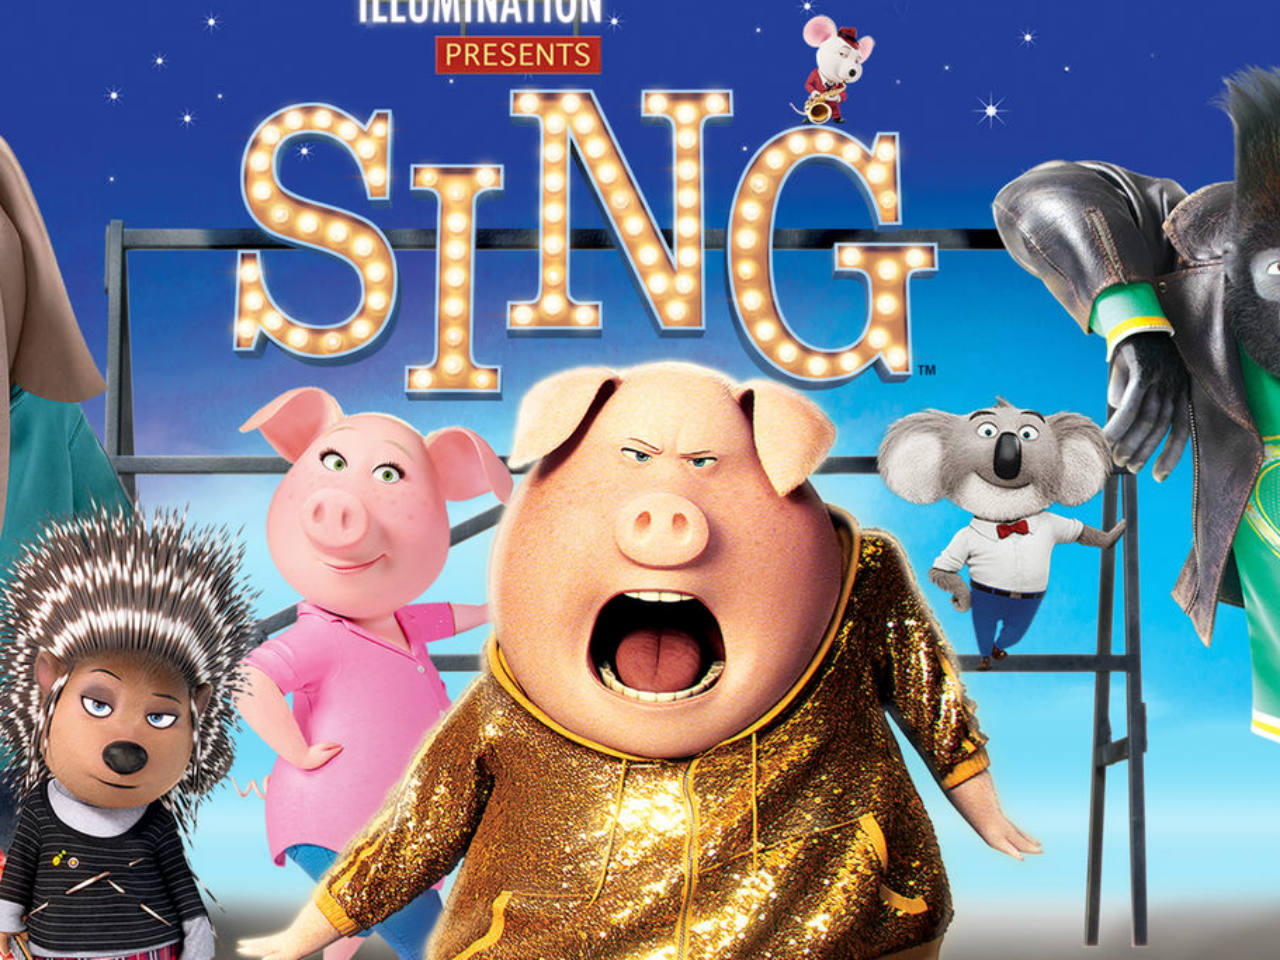 The movie poster from the kids' movie Sing